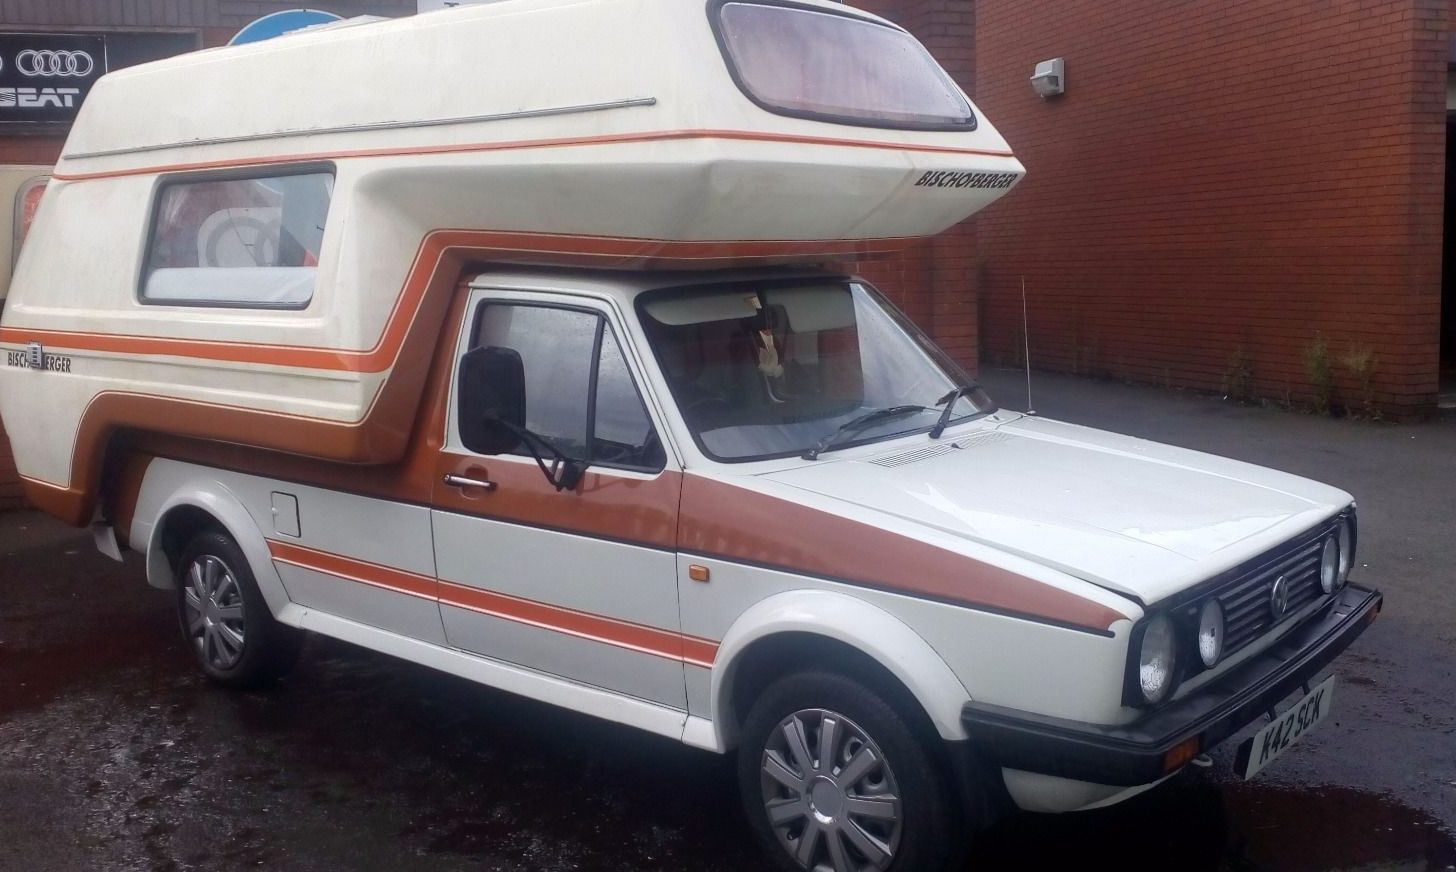 Not A Dolphin Vw Bishcofberger Camper